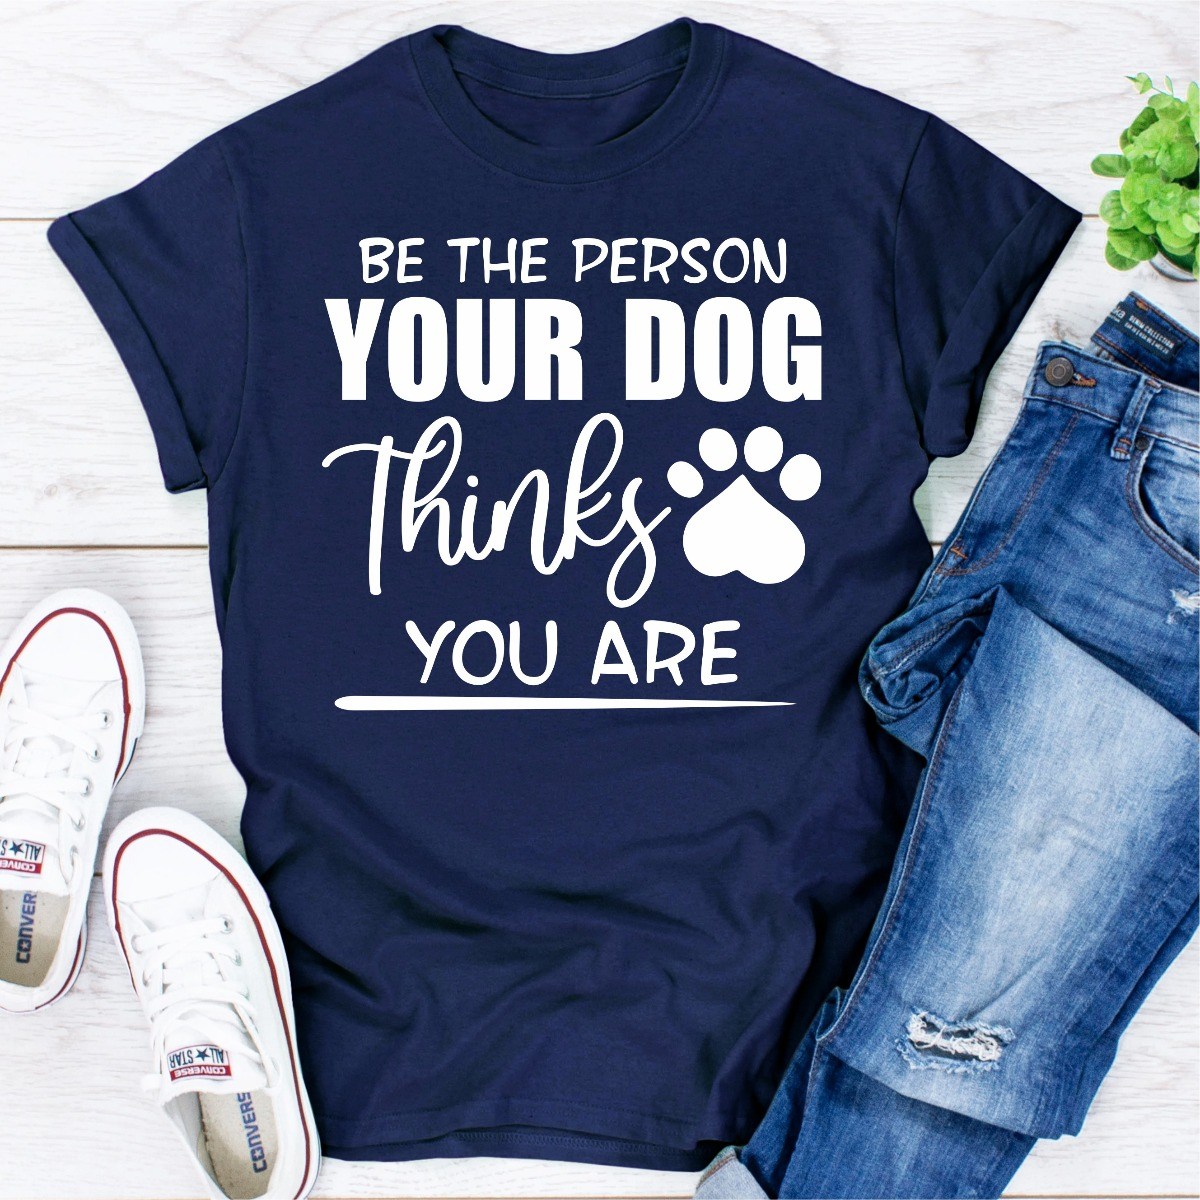 Be The Person Your Dog Thinks You Are (Navy / S)